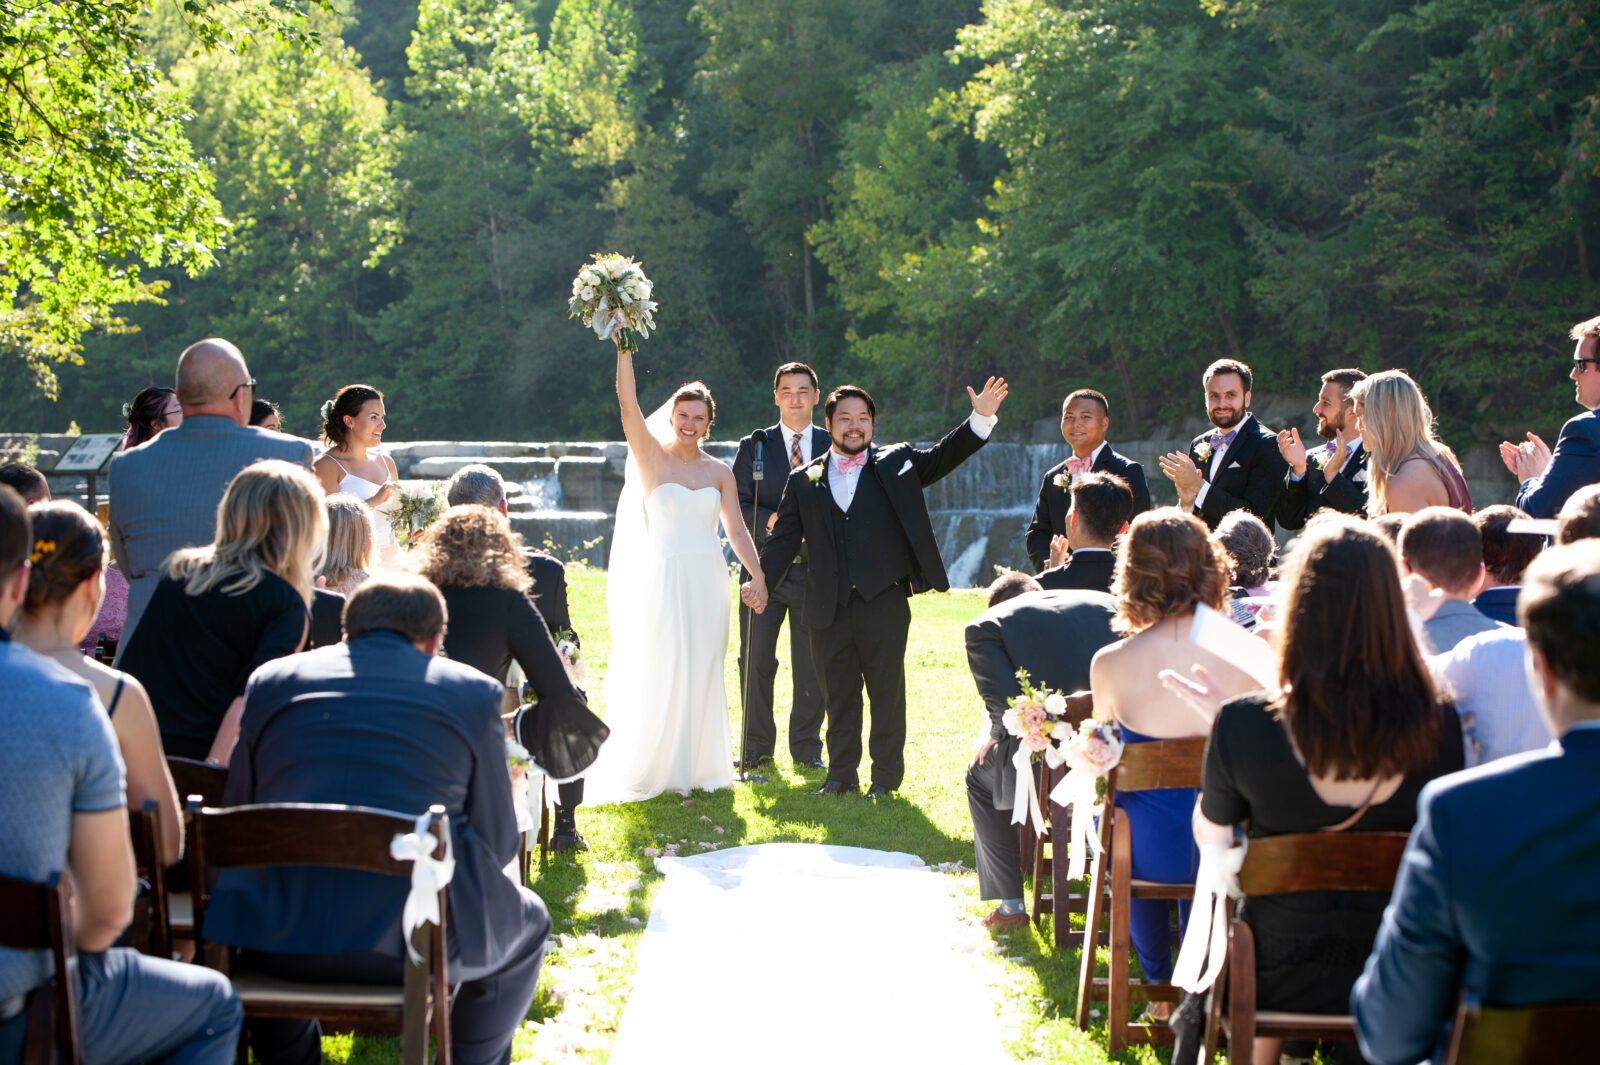 A bride and groom cheer with their wedding attendees